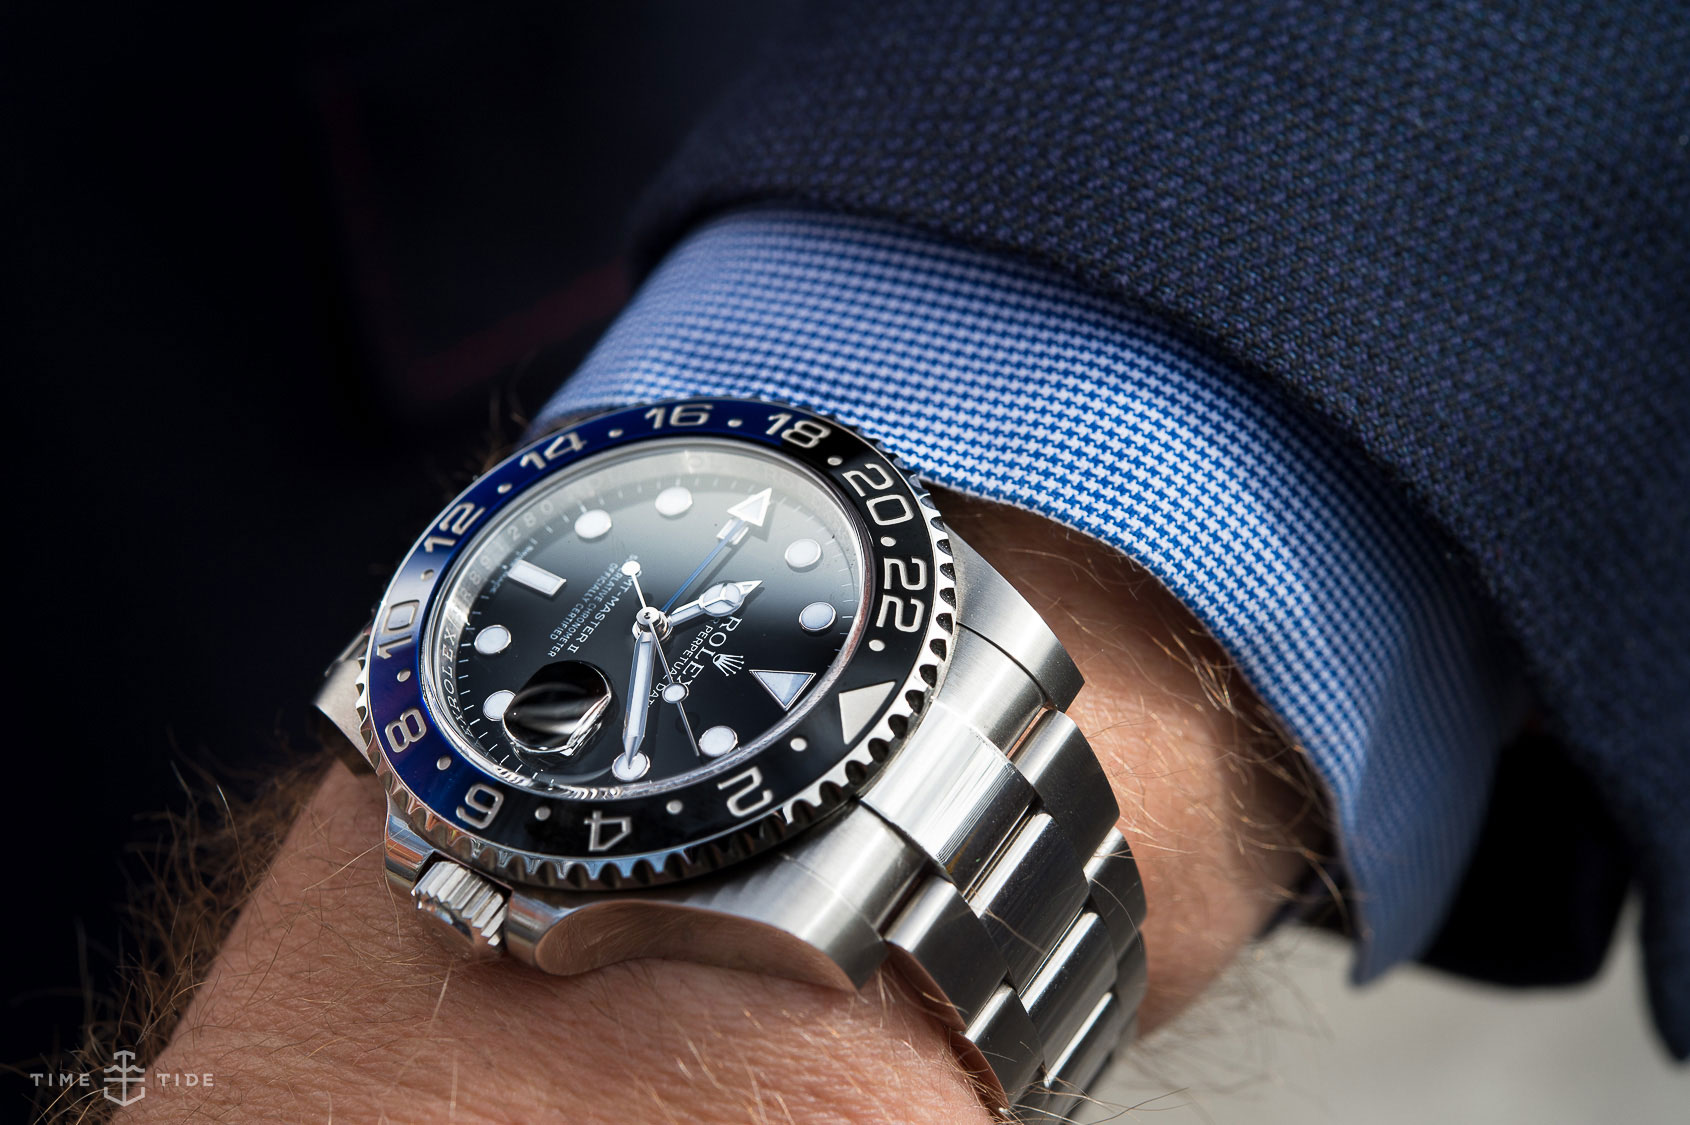 GMT: Rolex GMT Master II BLNR In-depth Review